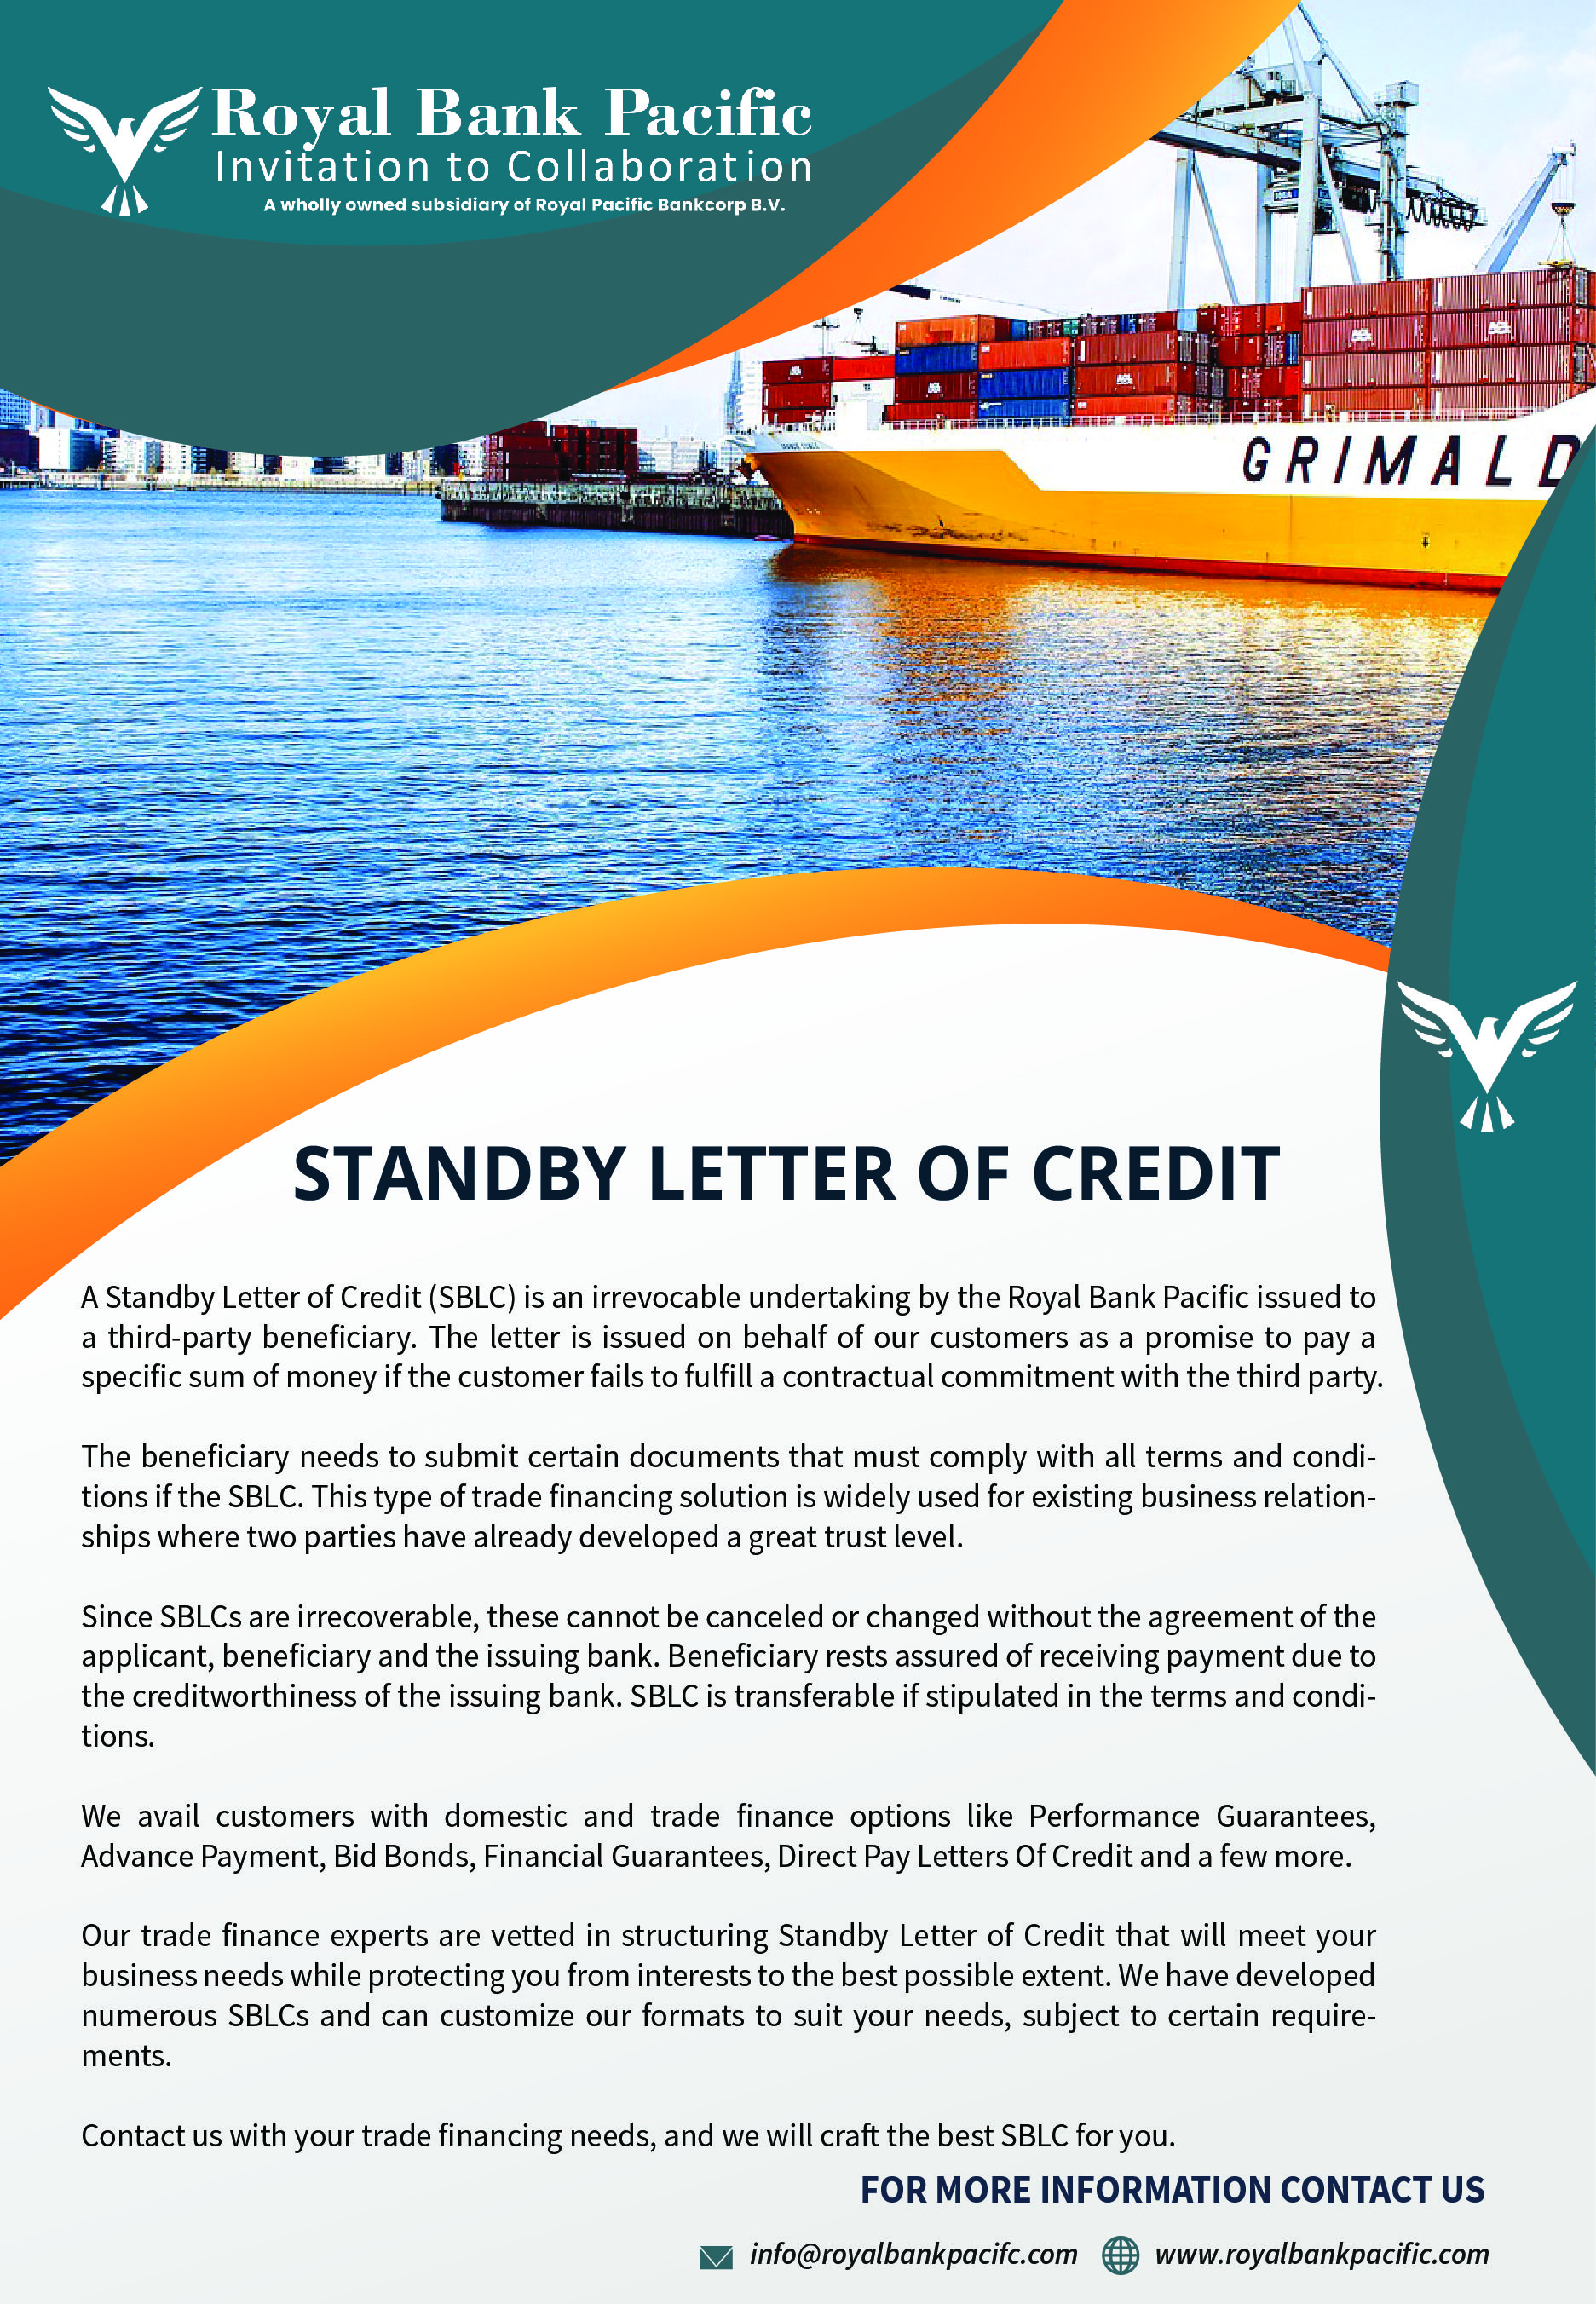 43++ Standby letter of credit vs letter of credit inspirations